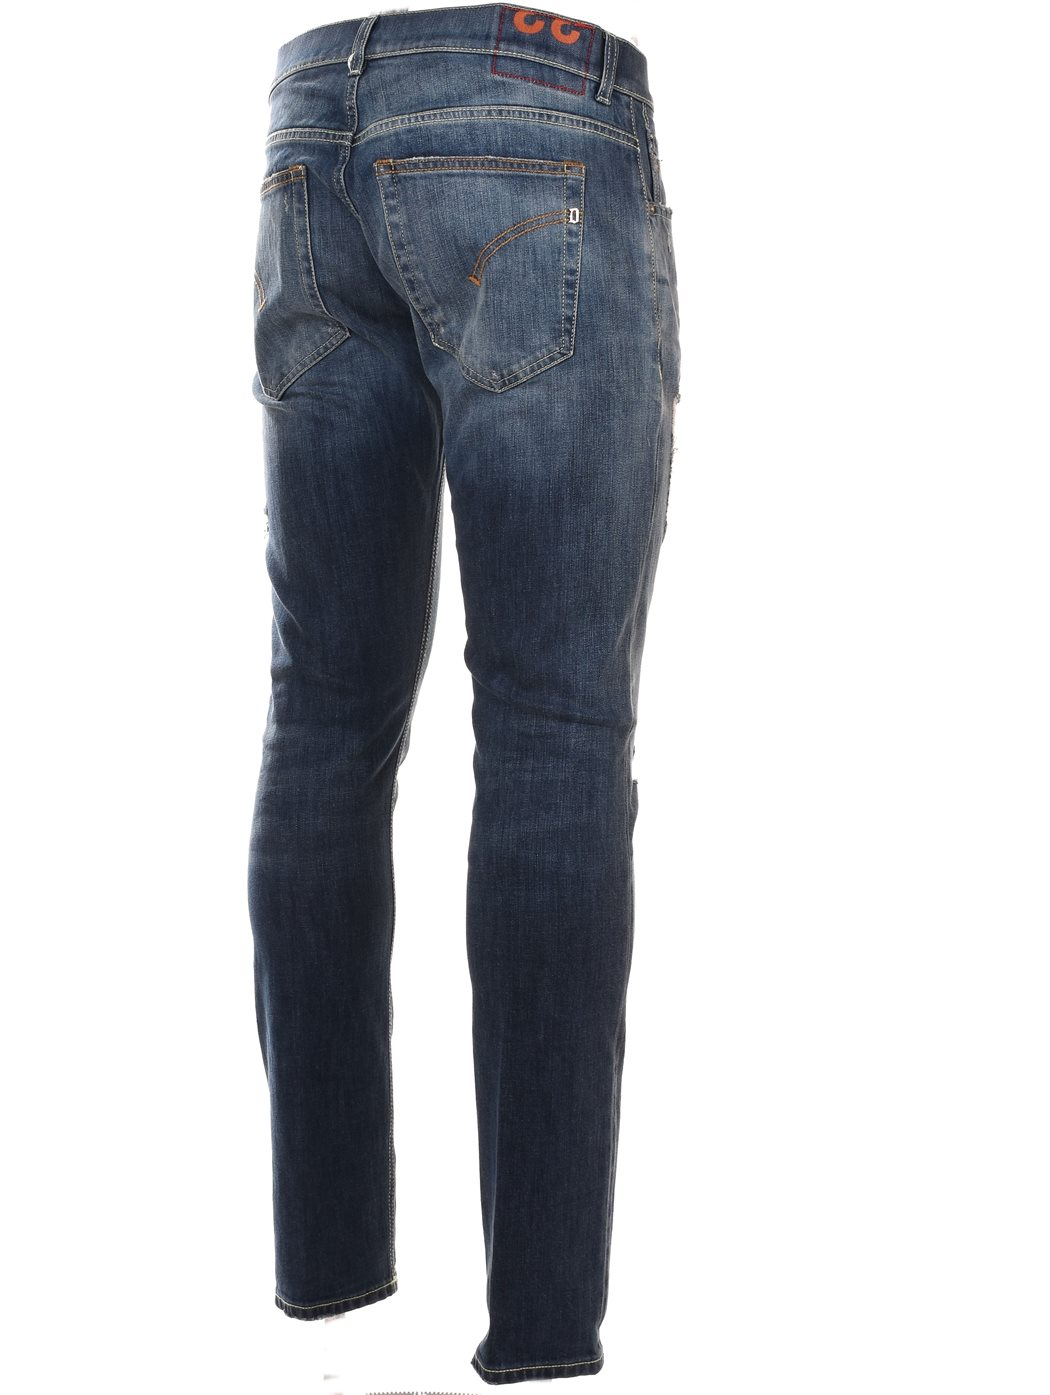 DONDUP UP424 DU800 JEANS